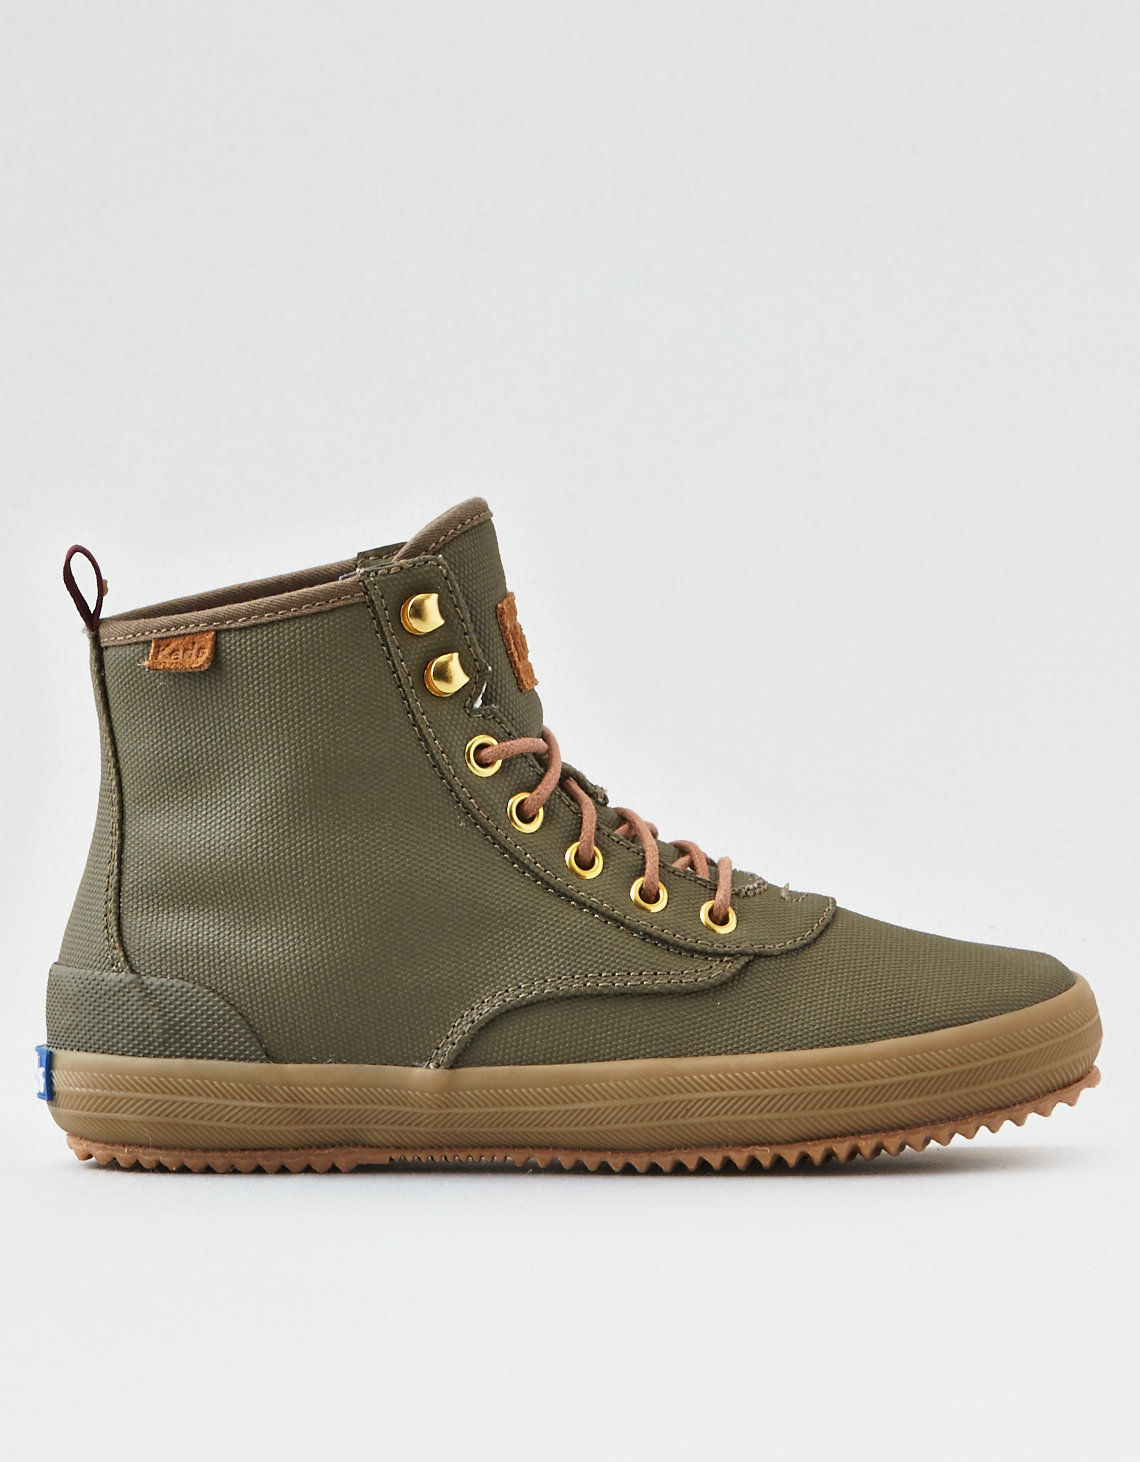 7eb799015df Keds Scout Boot